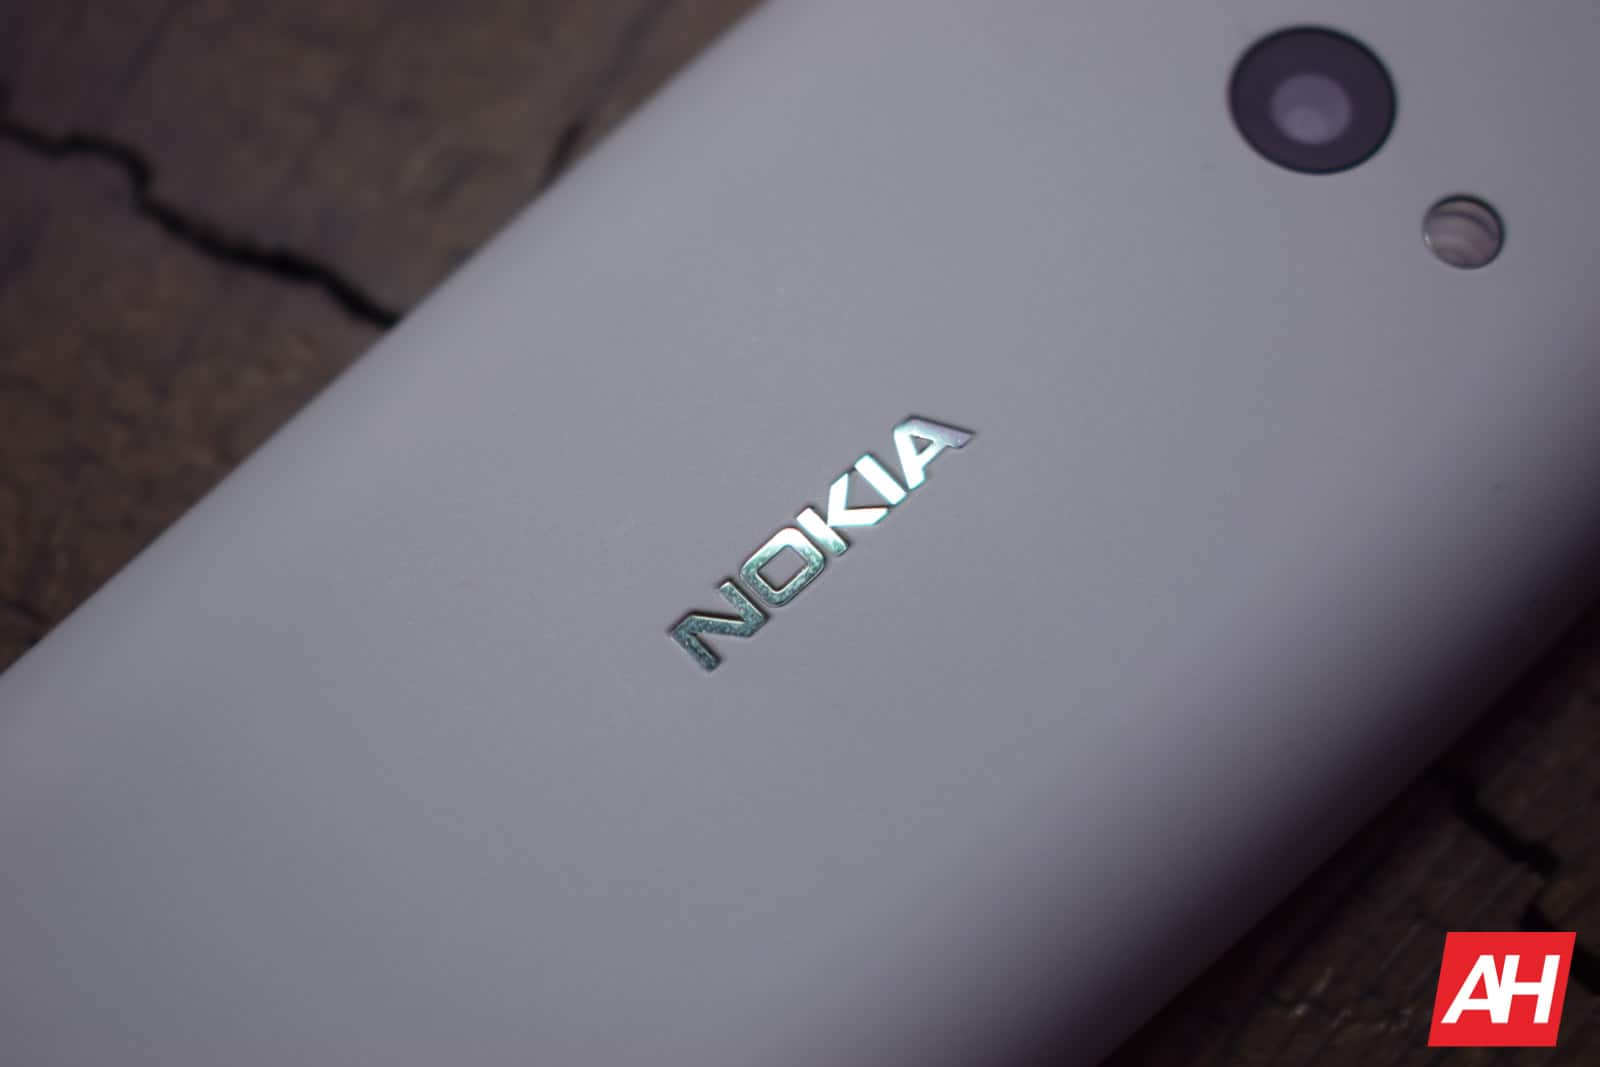 HMD Still Trying To Launch 3 New Nokia Phones Before Christmas